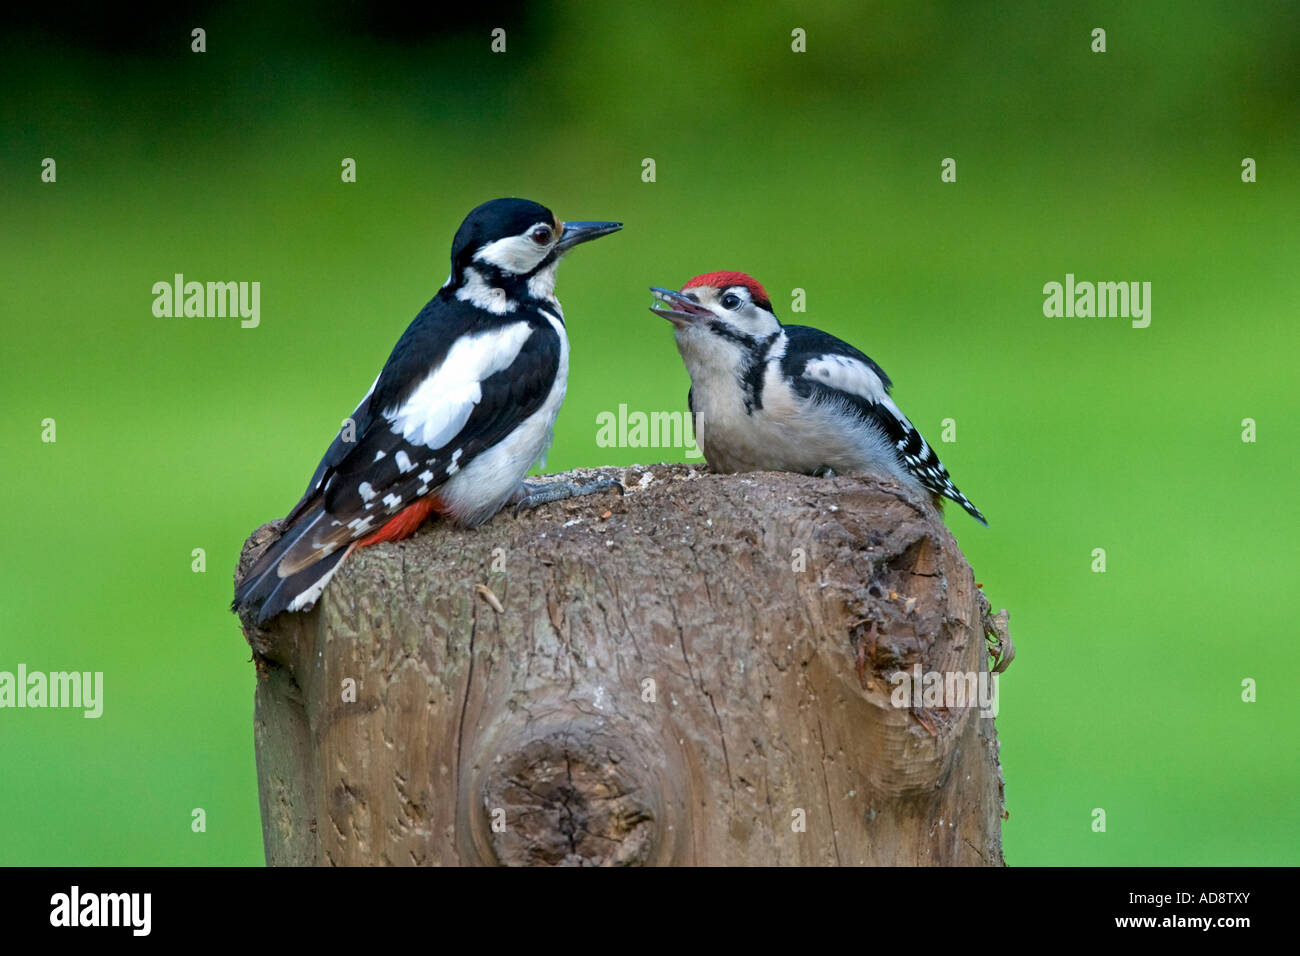 Dendrocopos major Great  Spotted Woodpecker  feeding on stump. Natural history. Wildlife. - Stock Image